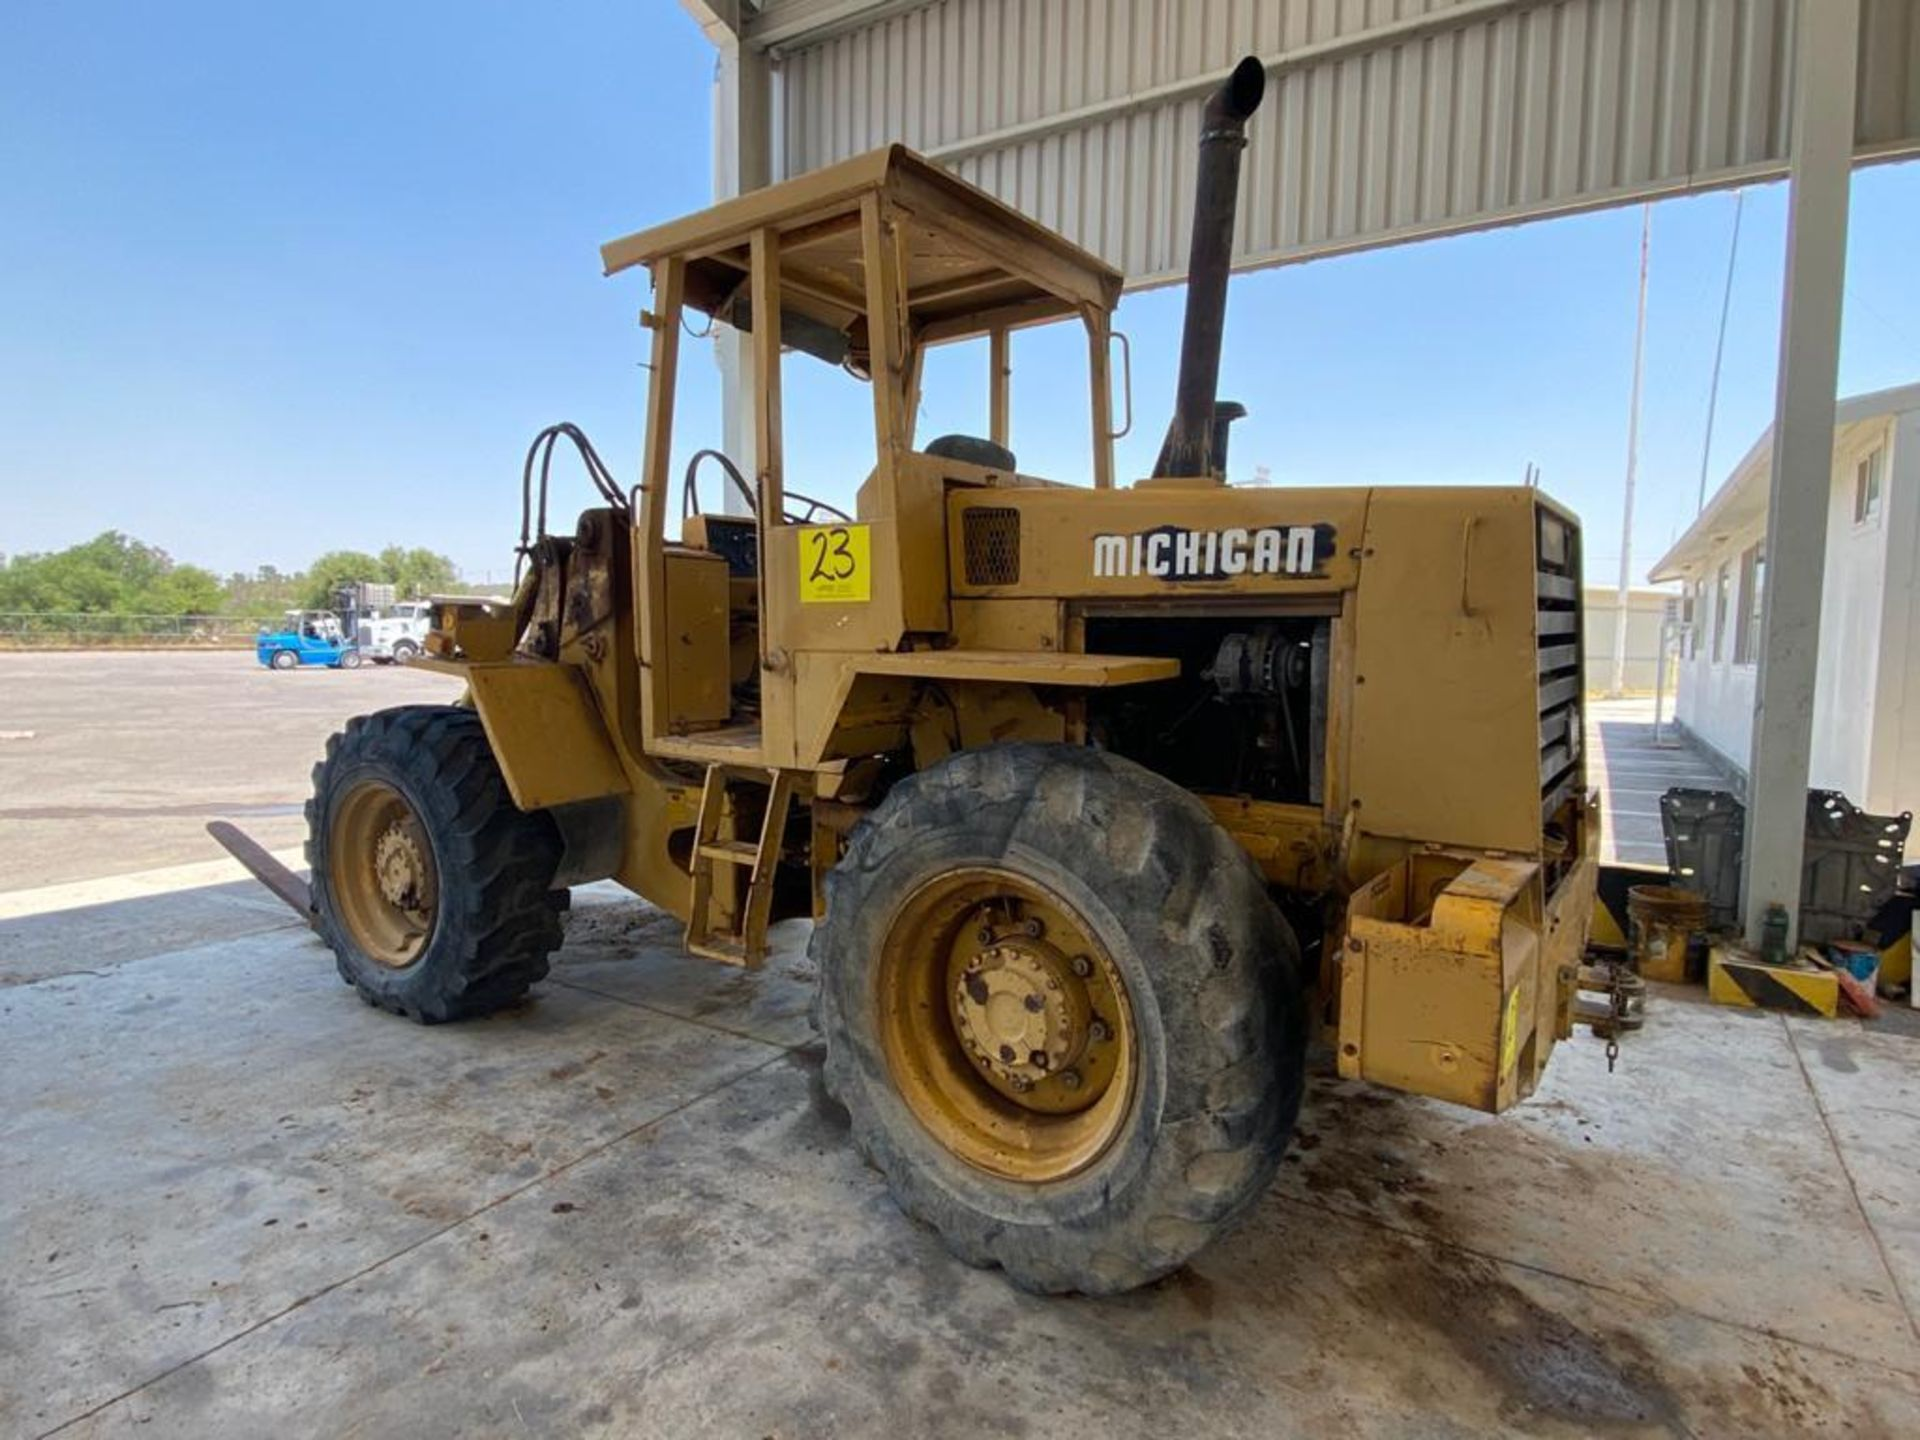 Volvo BM TYPE L 30 Michigan Front Loder, automatic transmission - Image 10 of 53